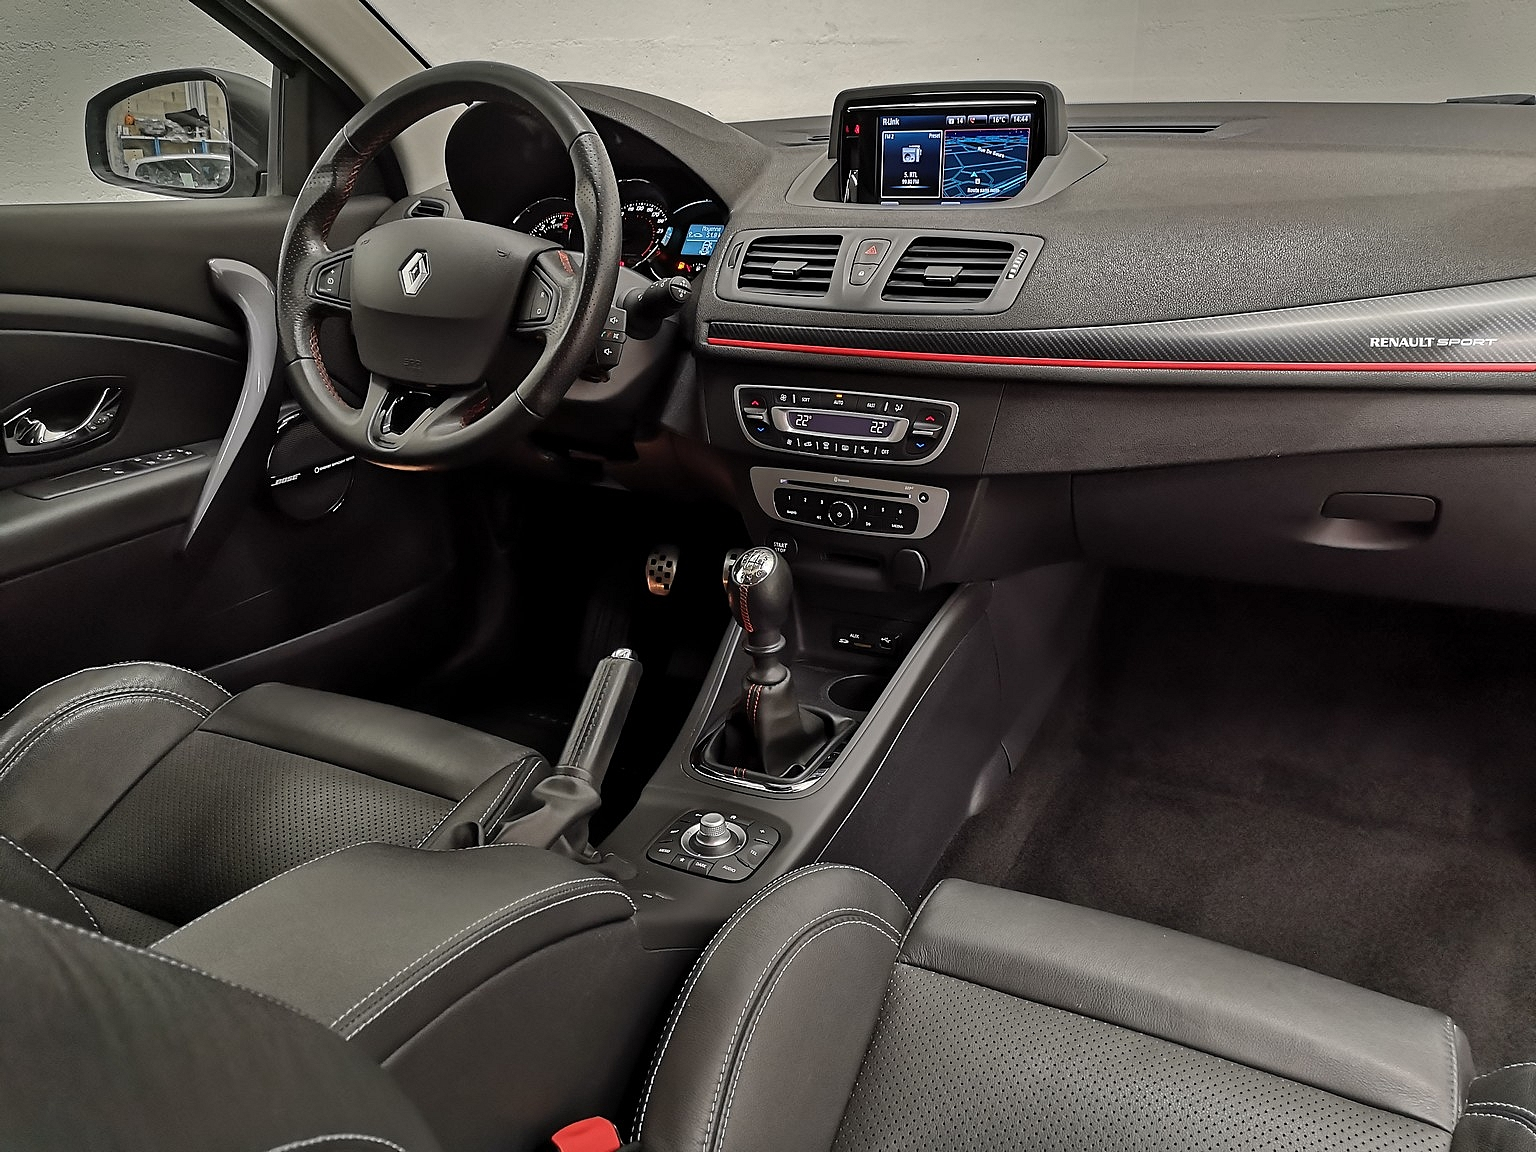 RENAULT MEGANE III COUPE 2015 à 9990 € - Photo n°6